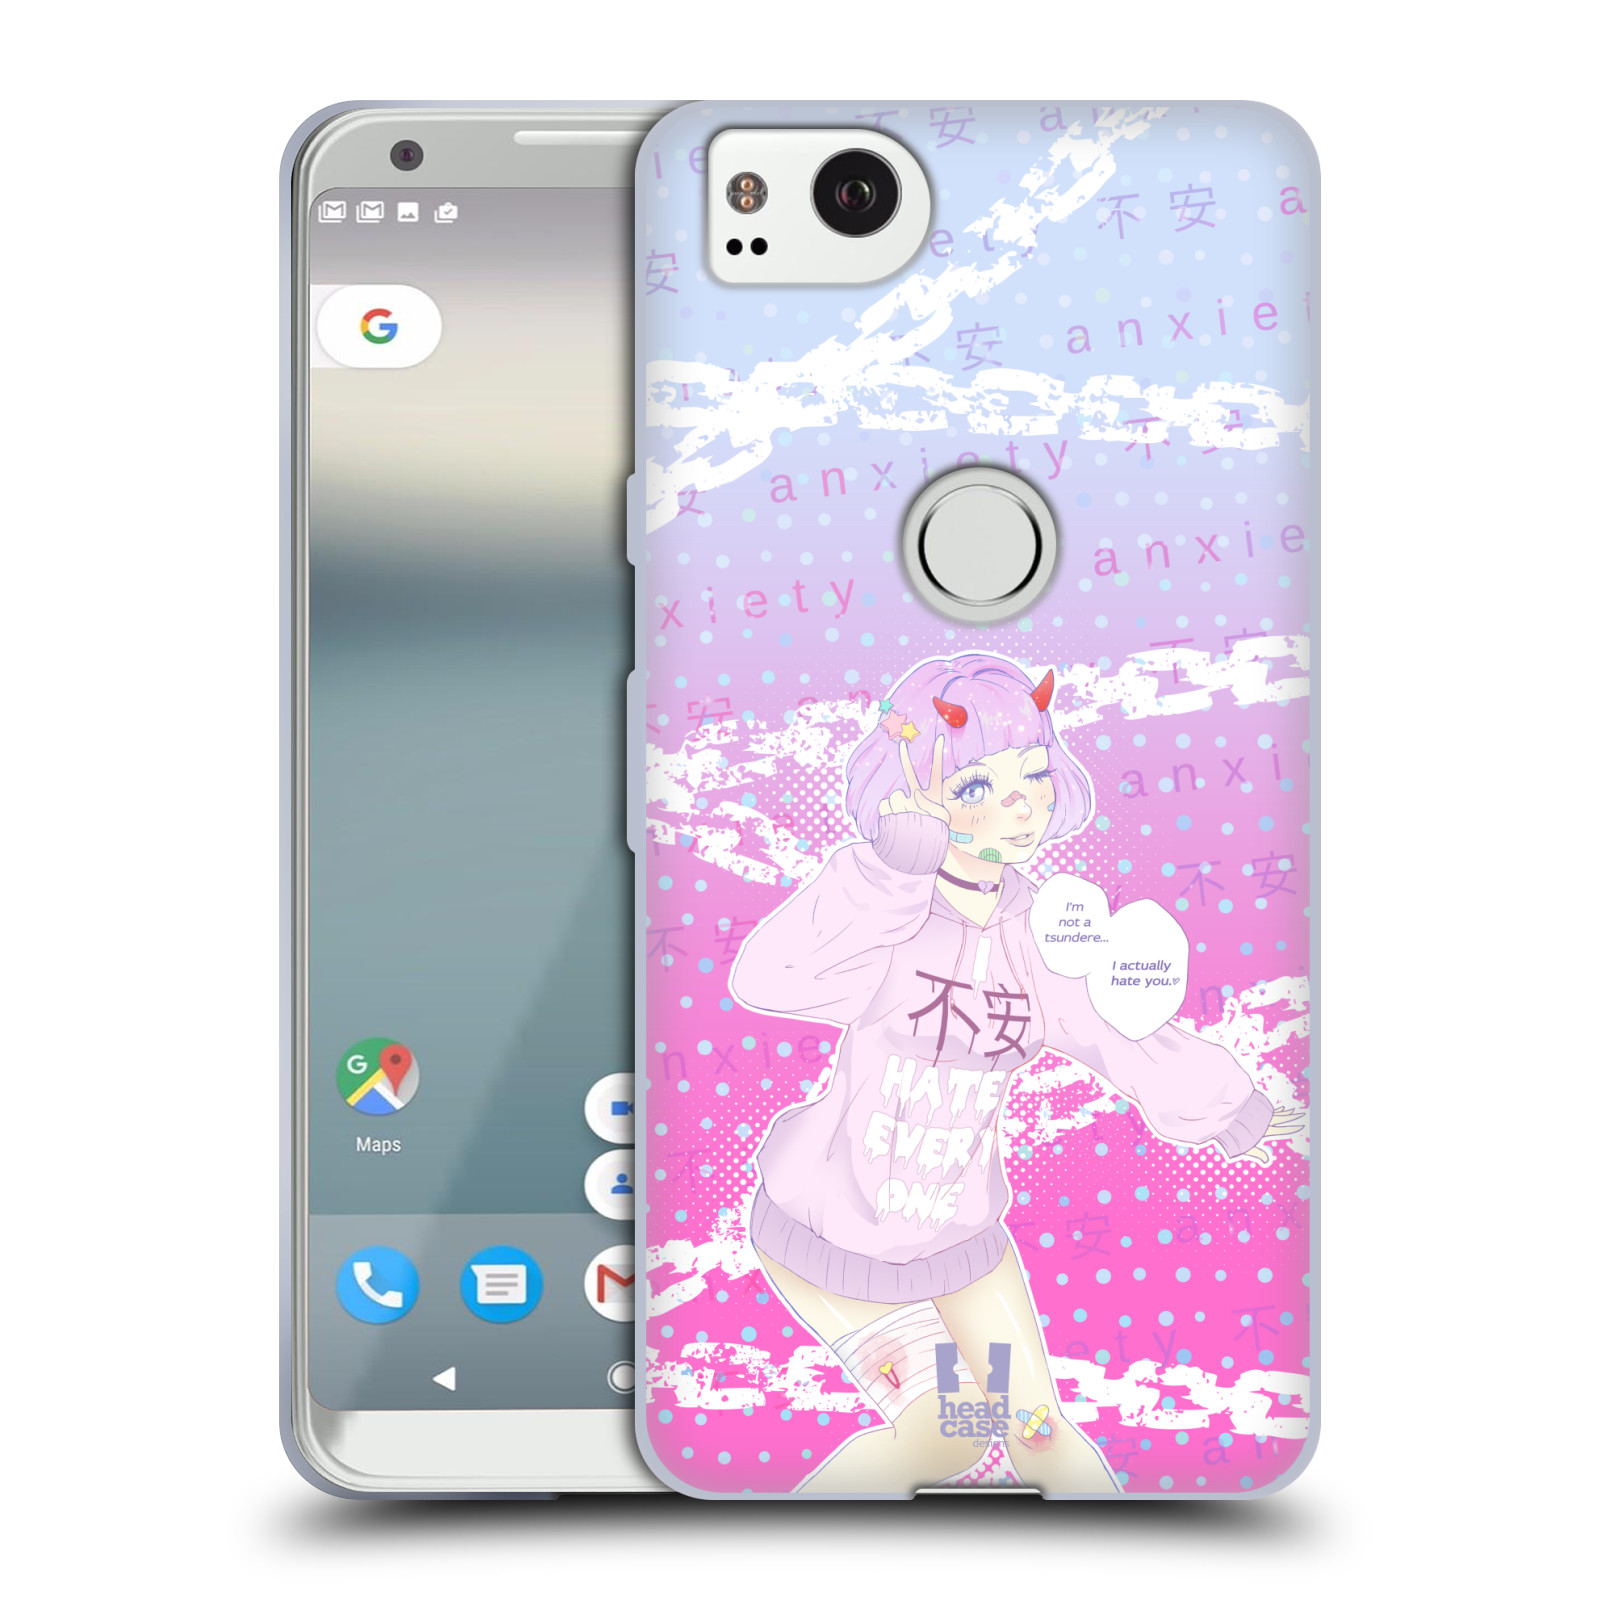 HEAD-CASE-DESIGNS-YAMI-KAWAII-SOFT-GEL-CASE-FOR-AMAZON-ASUS-ONEPLUS